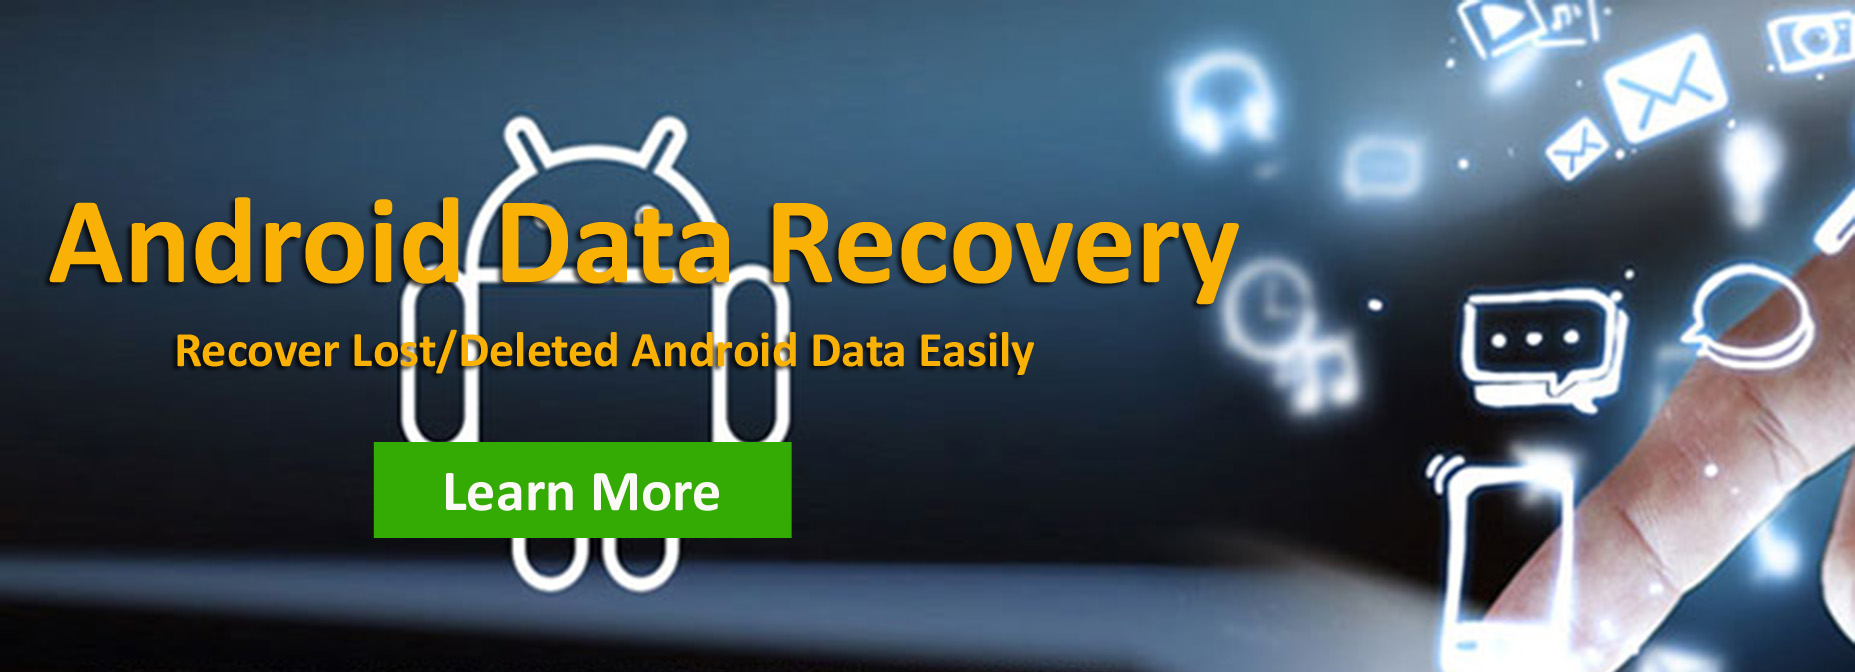 Best Way To Restore Lost/Deleted Data From Android Devices